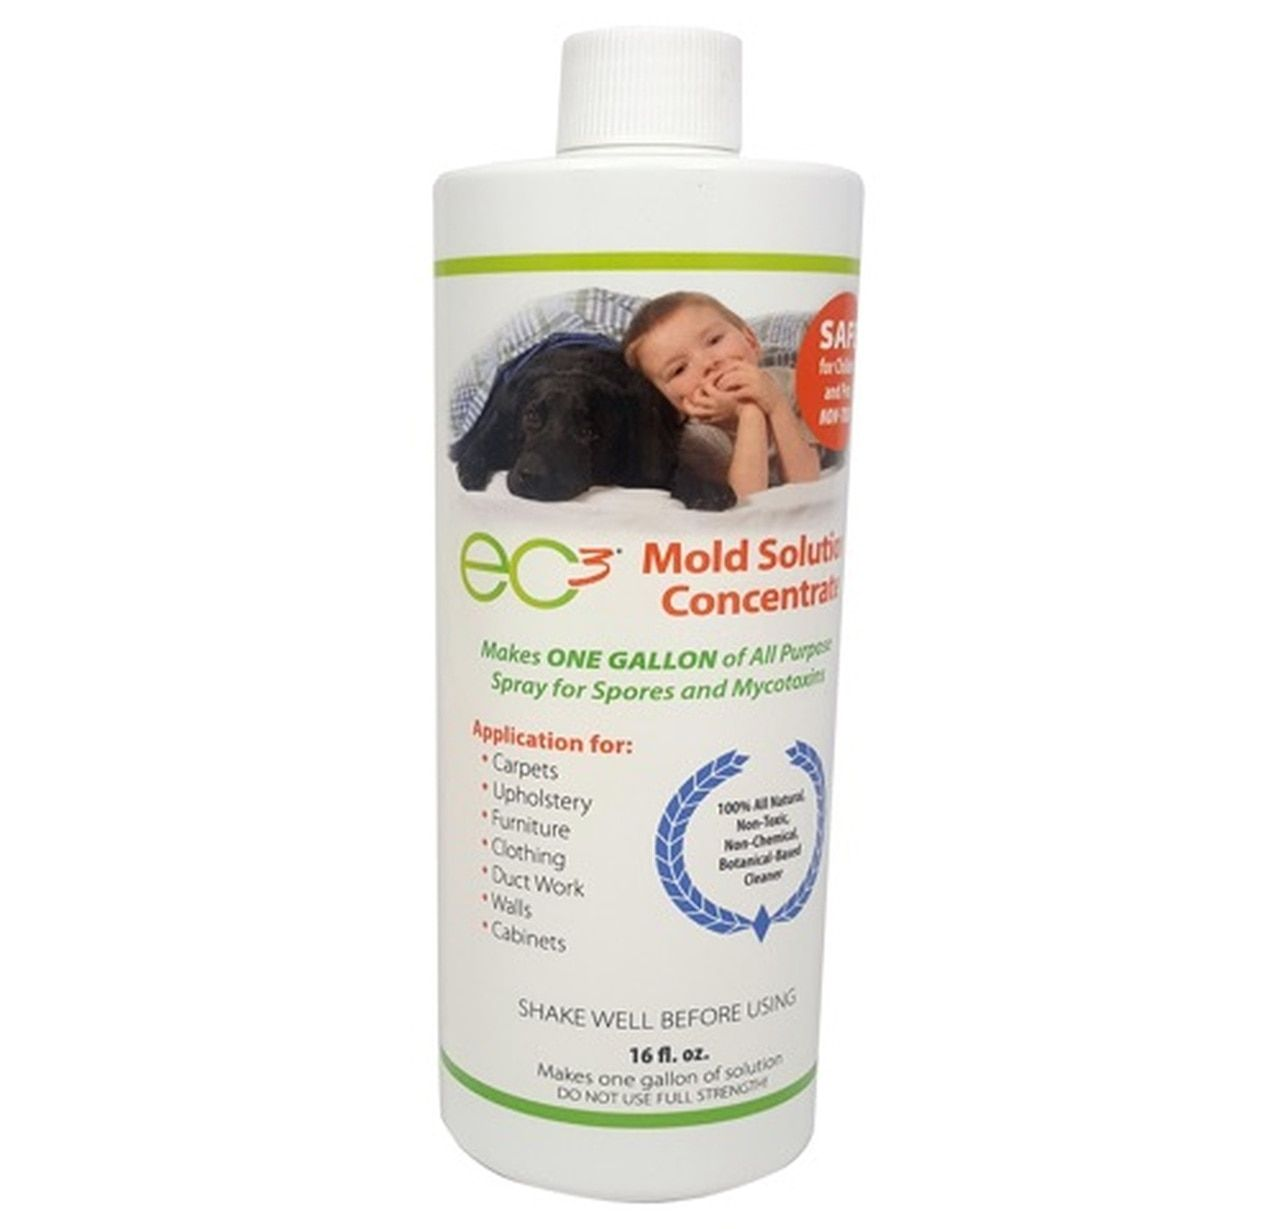 Ec3 Mold Solution Concentrate In 2020 Mold Remover Mold Exposure Mold Allergy